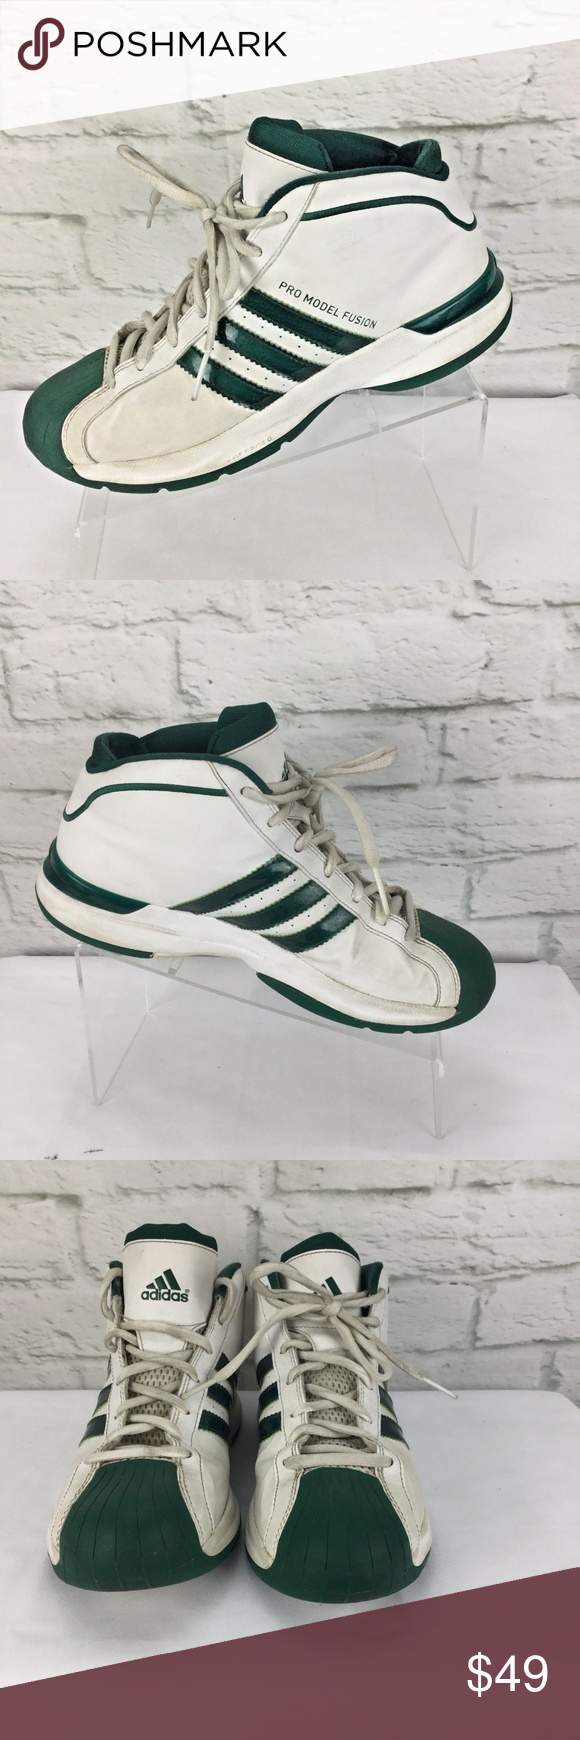 98ebf6d595e Classic 2004 Adidas Pro Model Fusion Mens 8.5 M Classic 2004 Adidas Pro  Model Fusion Mens 8.5 M Shoes White Green As pre-owned